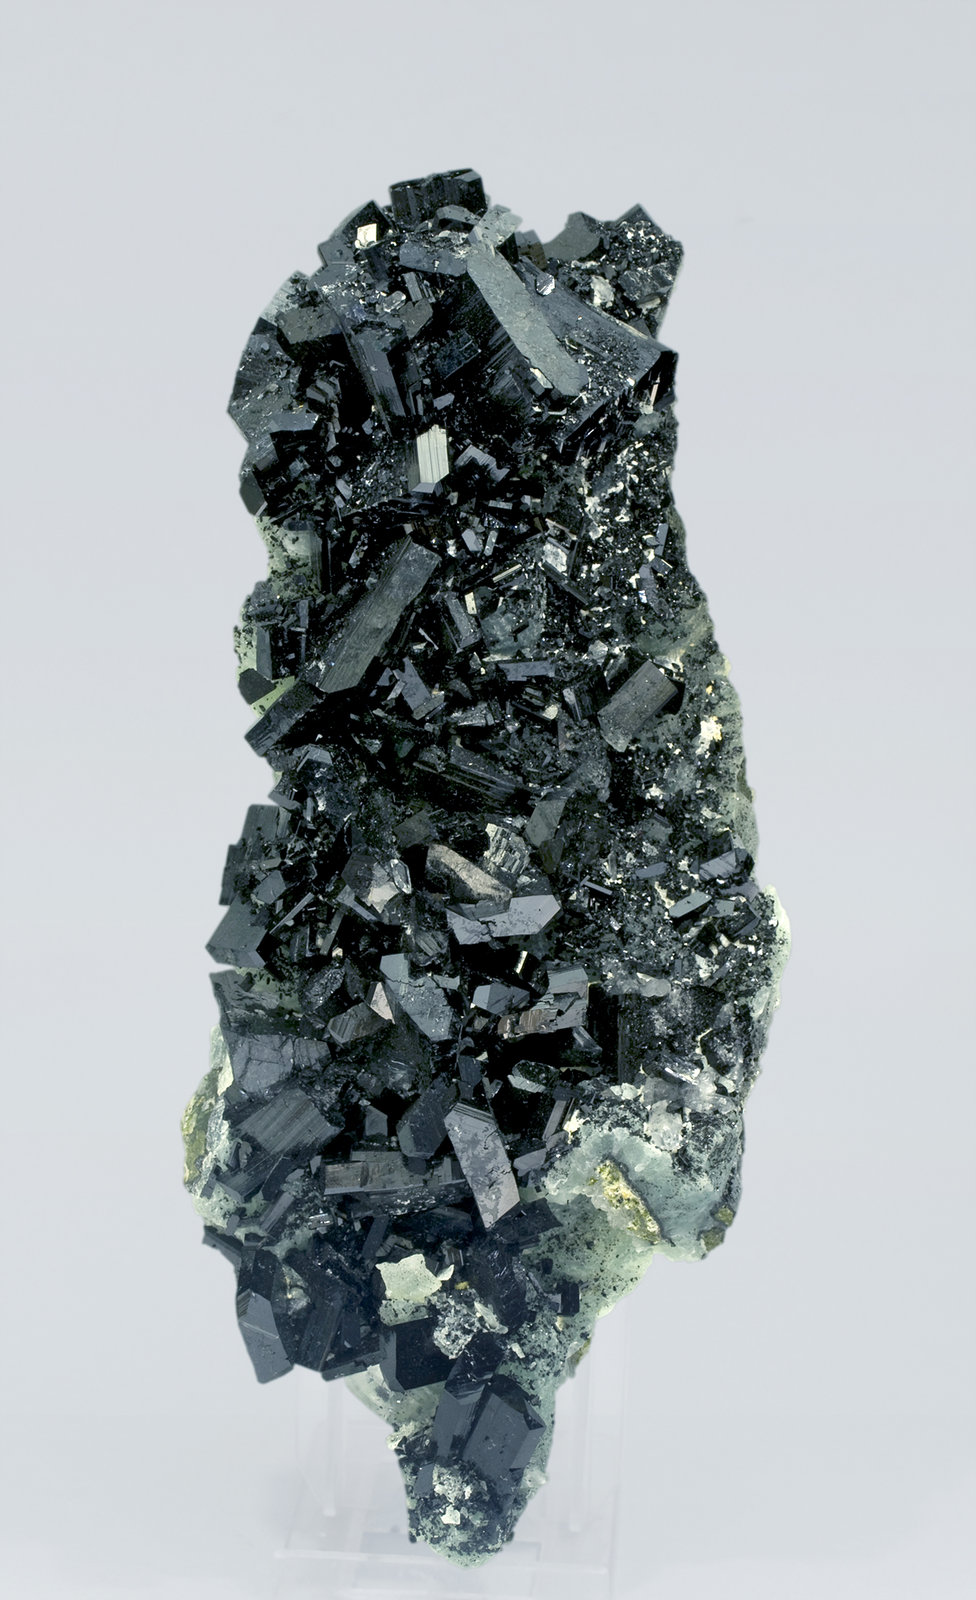 specimens/s_imagesR3/Babingtonite-TA98R3s.jpg